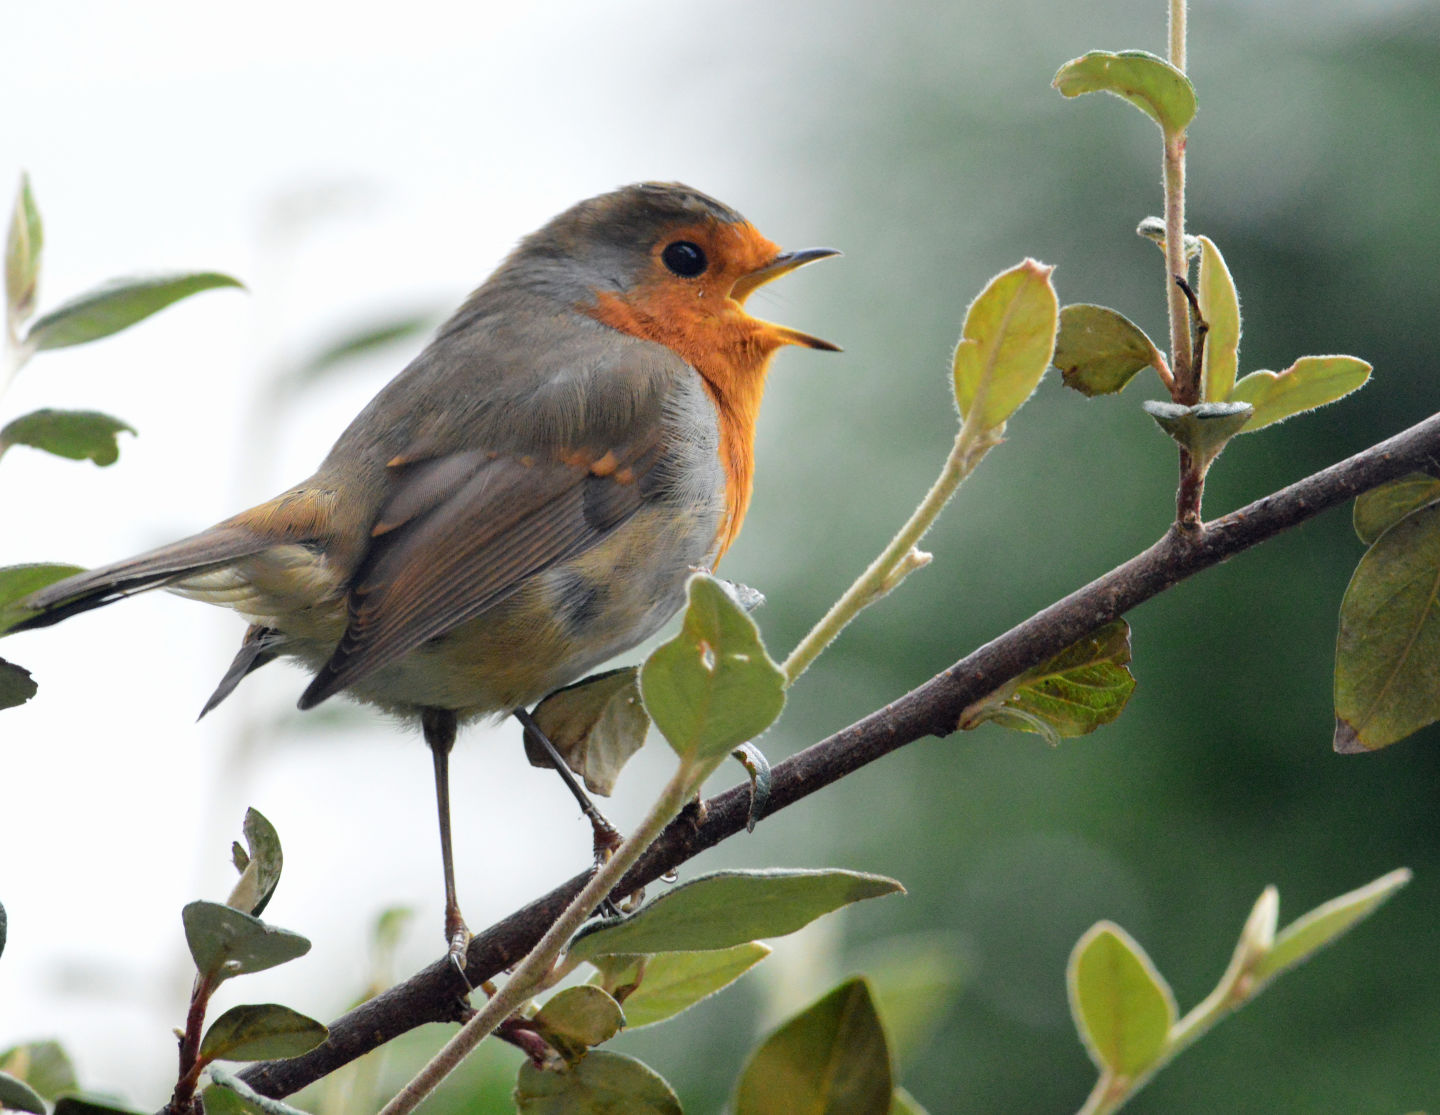 How the Songbird Learns to Sing